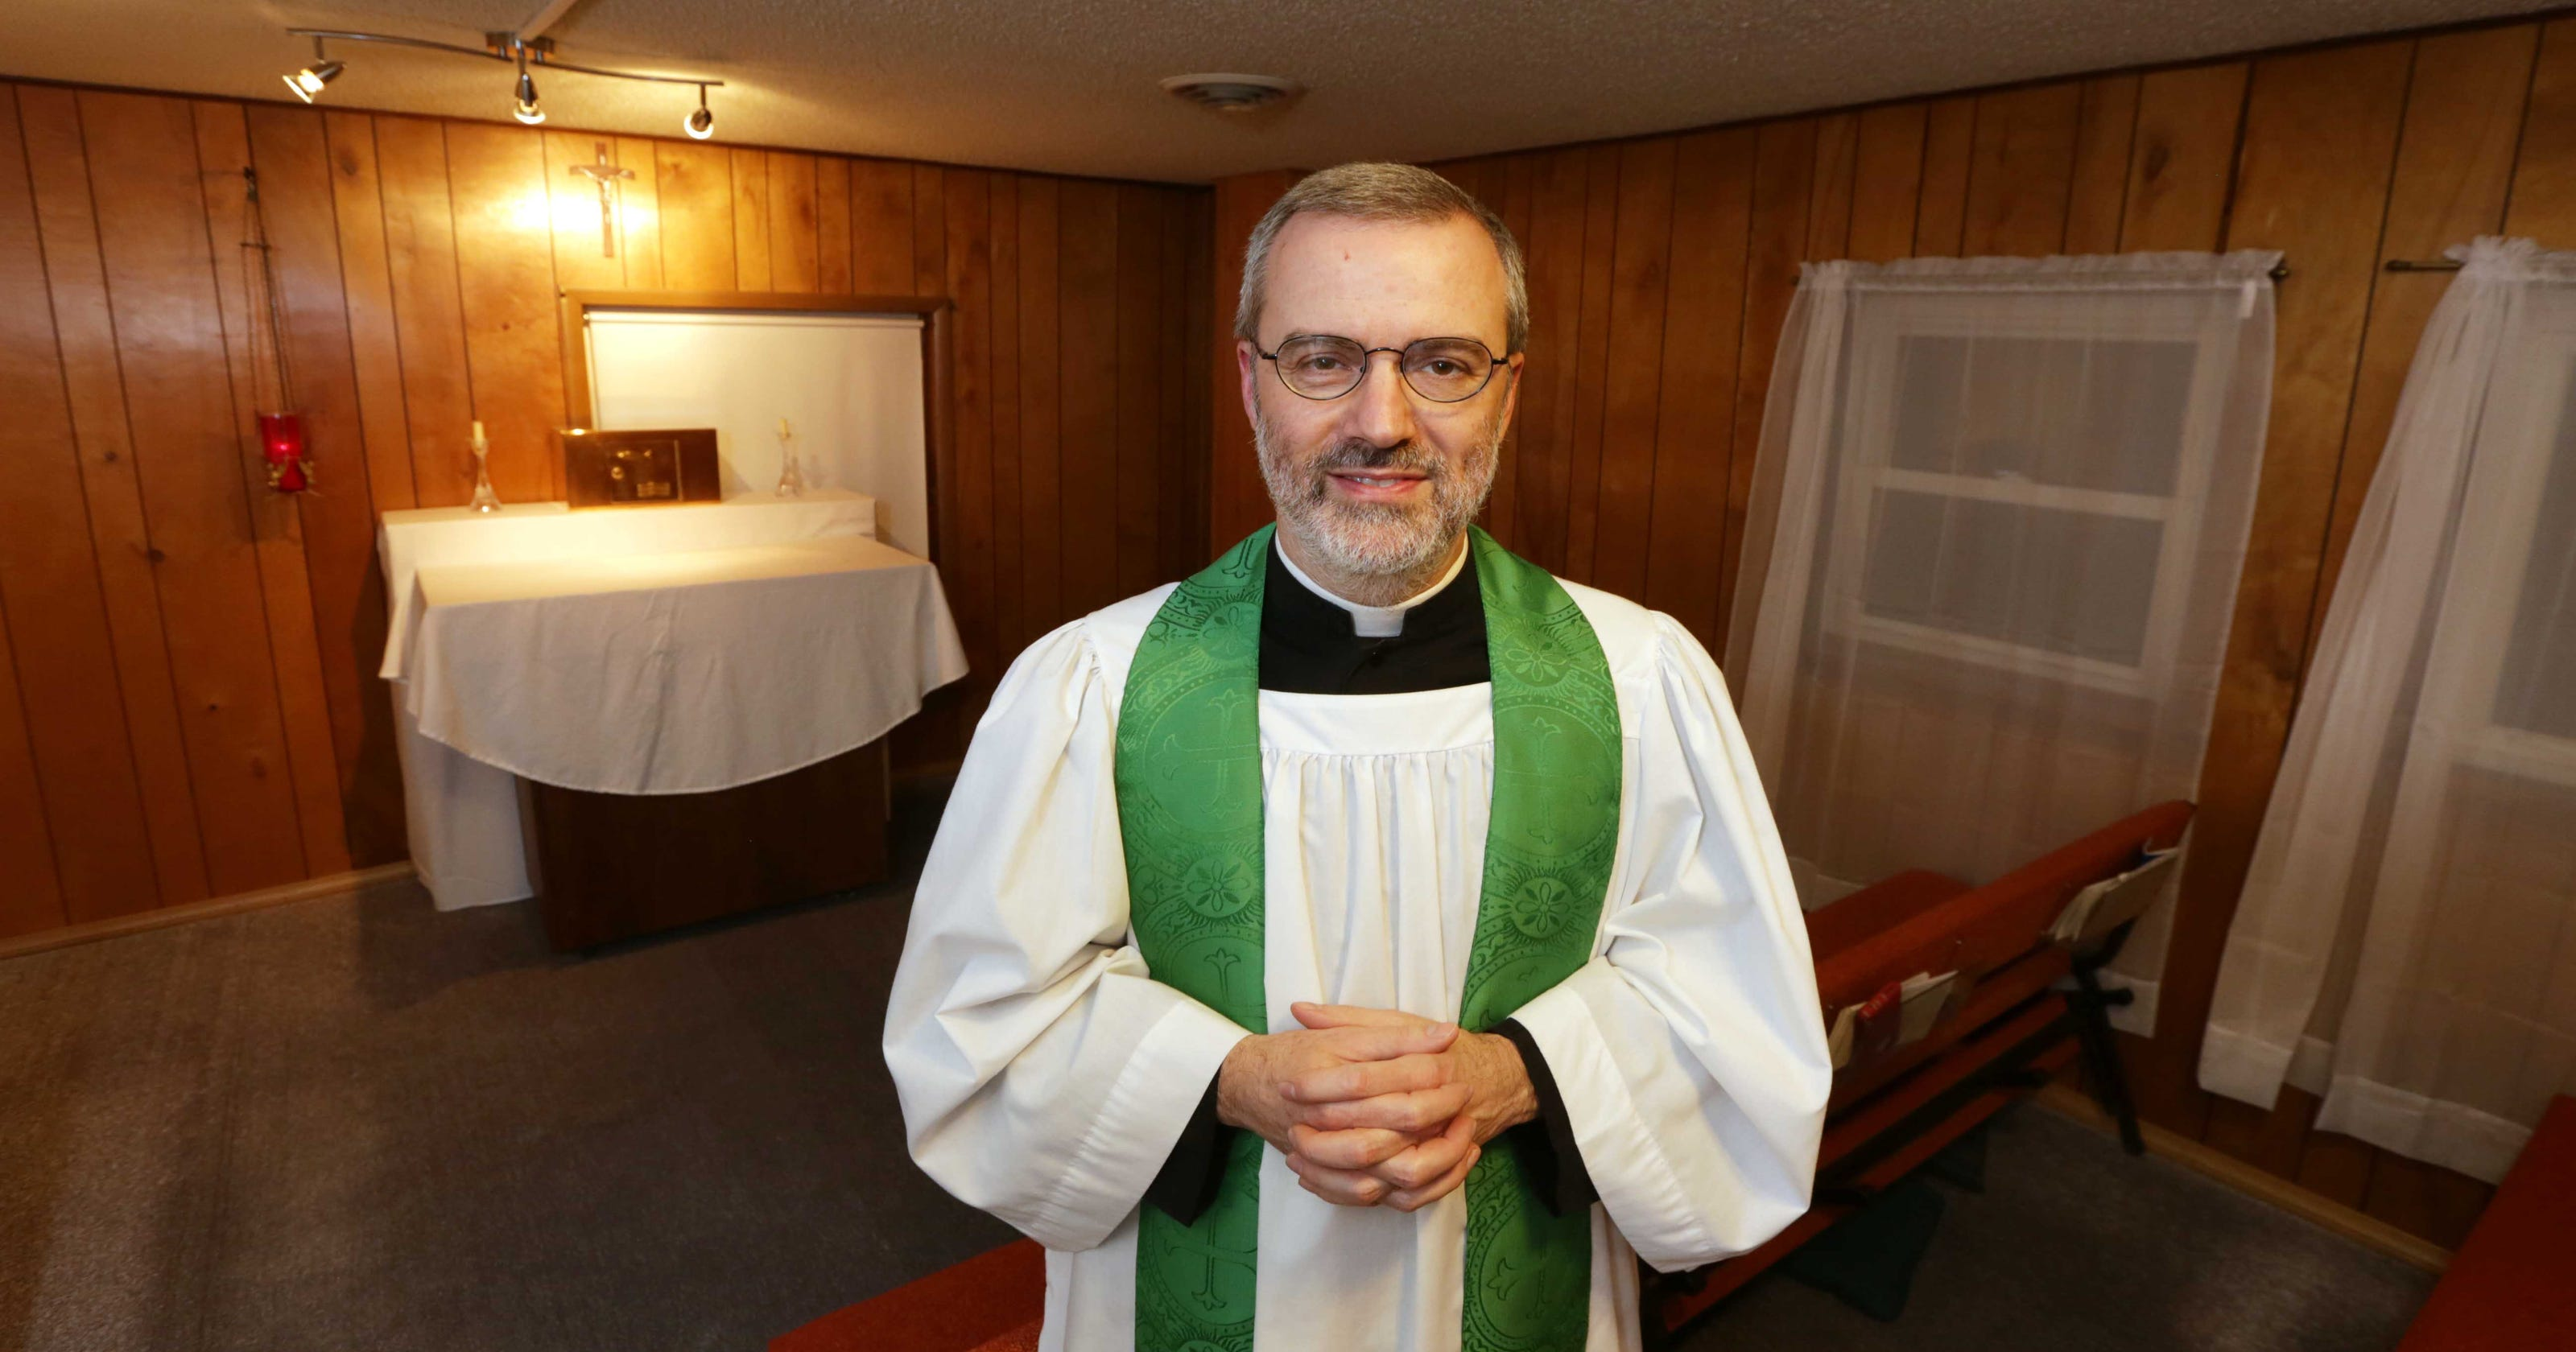 Priests Journey Home To Catholicism